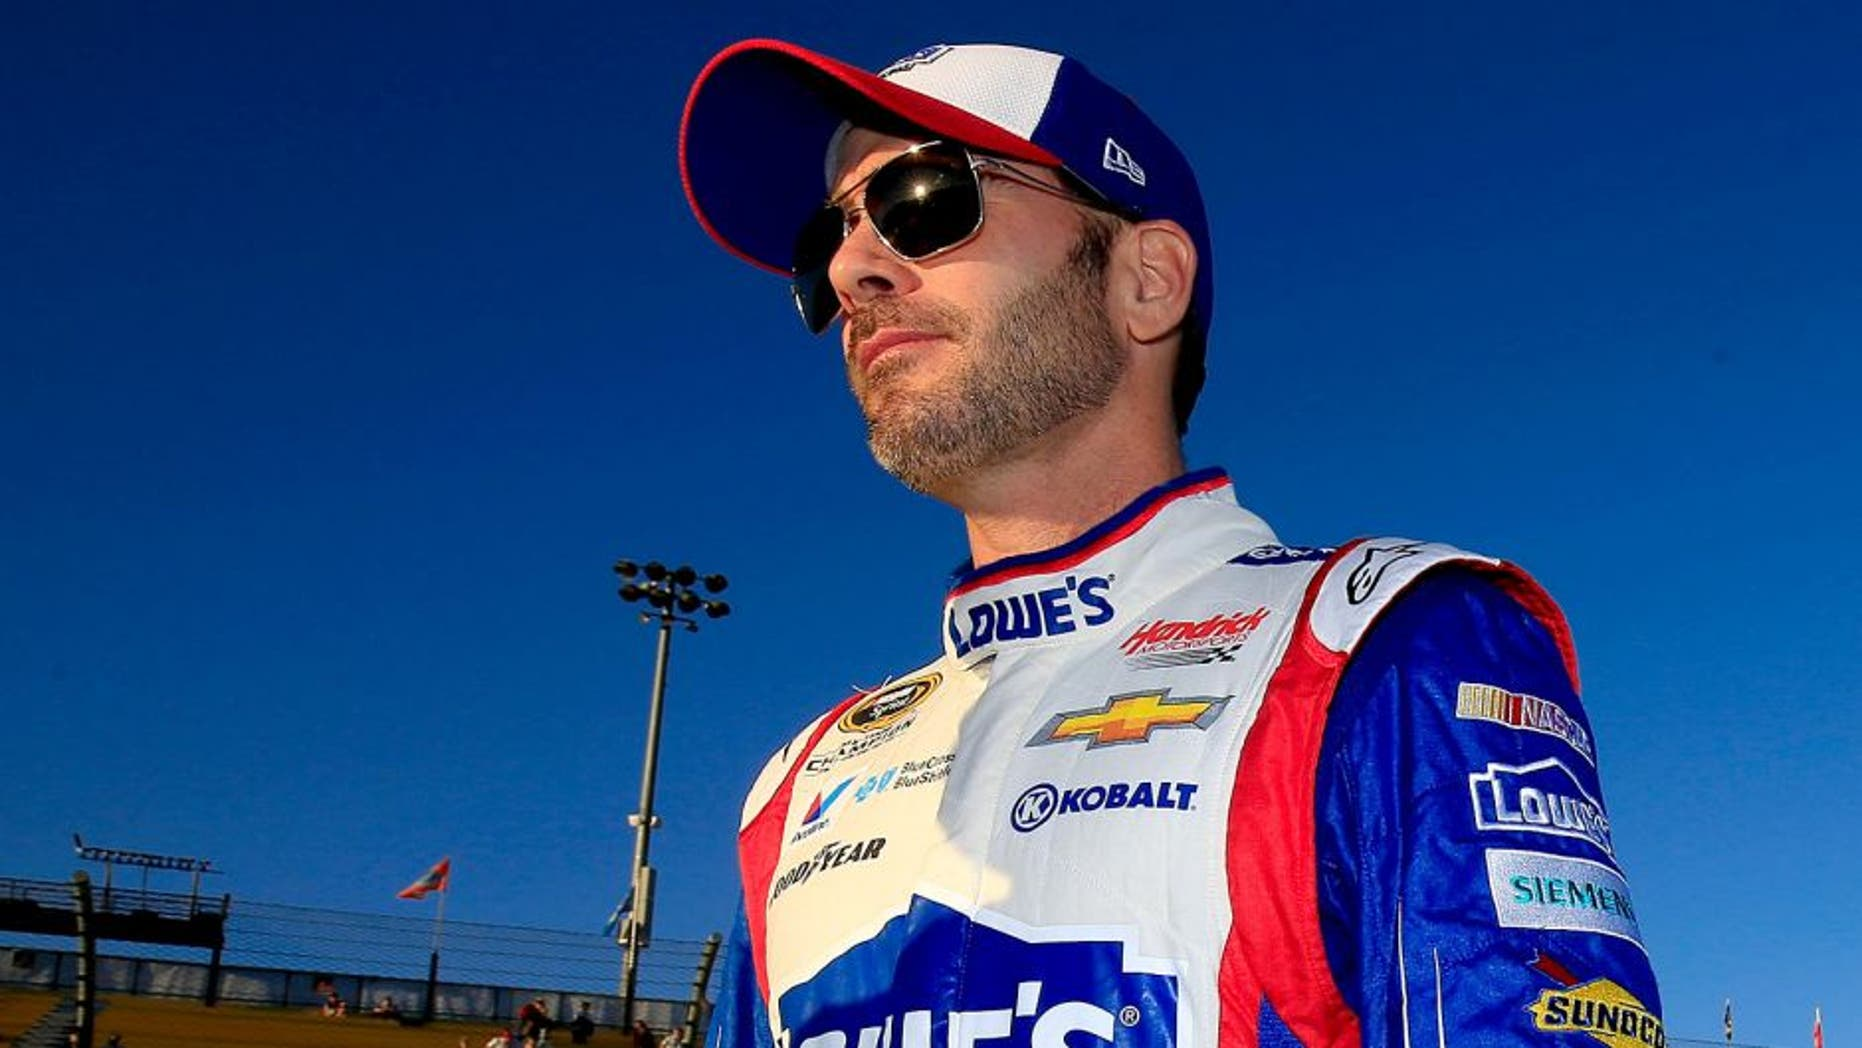 AVONDALE, AZ - NOVEMBER 13: Jimmie Johnson, driver of the #48 Lowe's Patriotic Chevrolet, walks on the grid during qualifying for the NASCAR Sprint Cup Series Quicken Loans Race for Heroes 500 at Phoenix International Raceway on November 13, 2015 in Avondale, Arizona. (Photo by Chris Trotman/Getty Images)